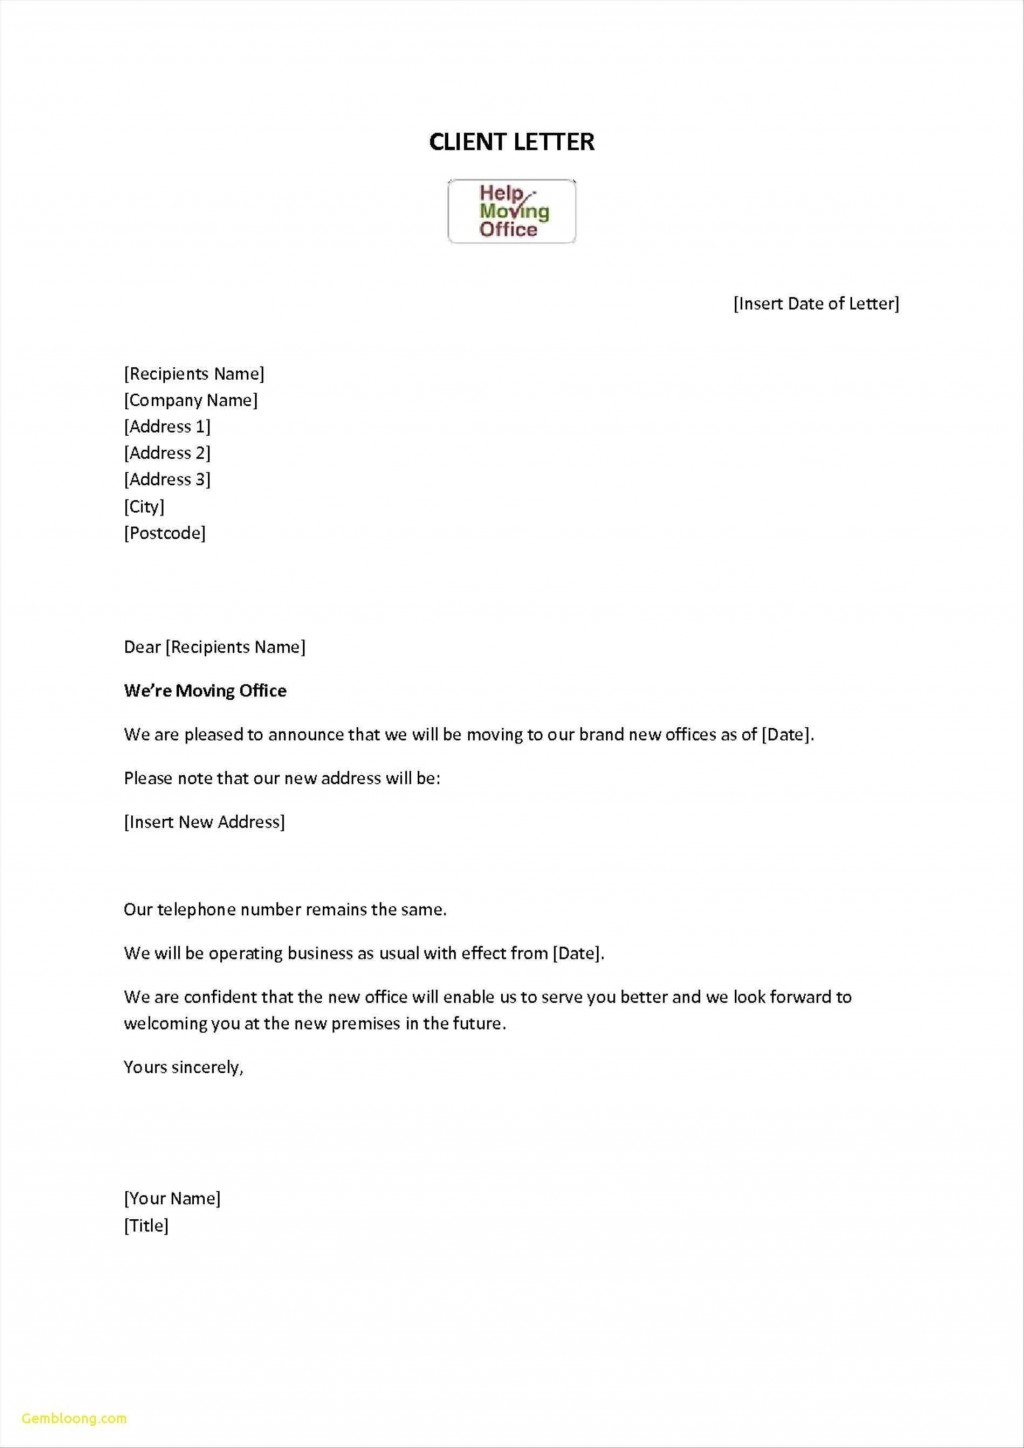 000 Staggering Change Of Addres Letter Template Concept  Templates For Busines FreeLarge